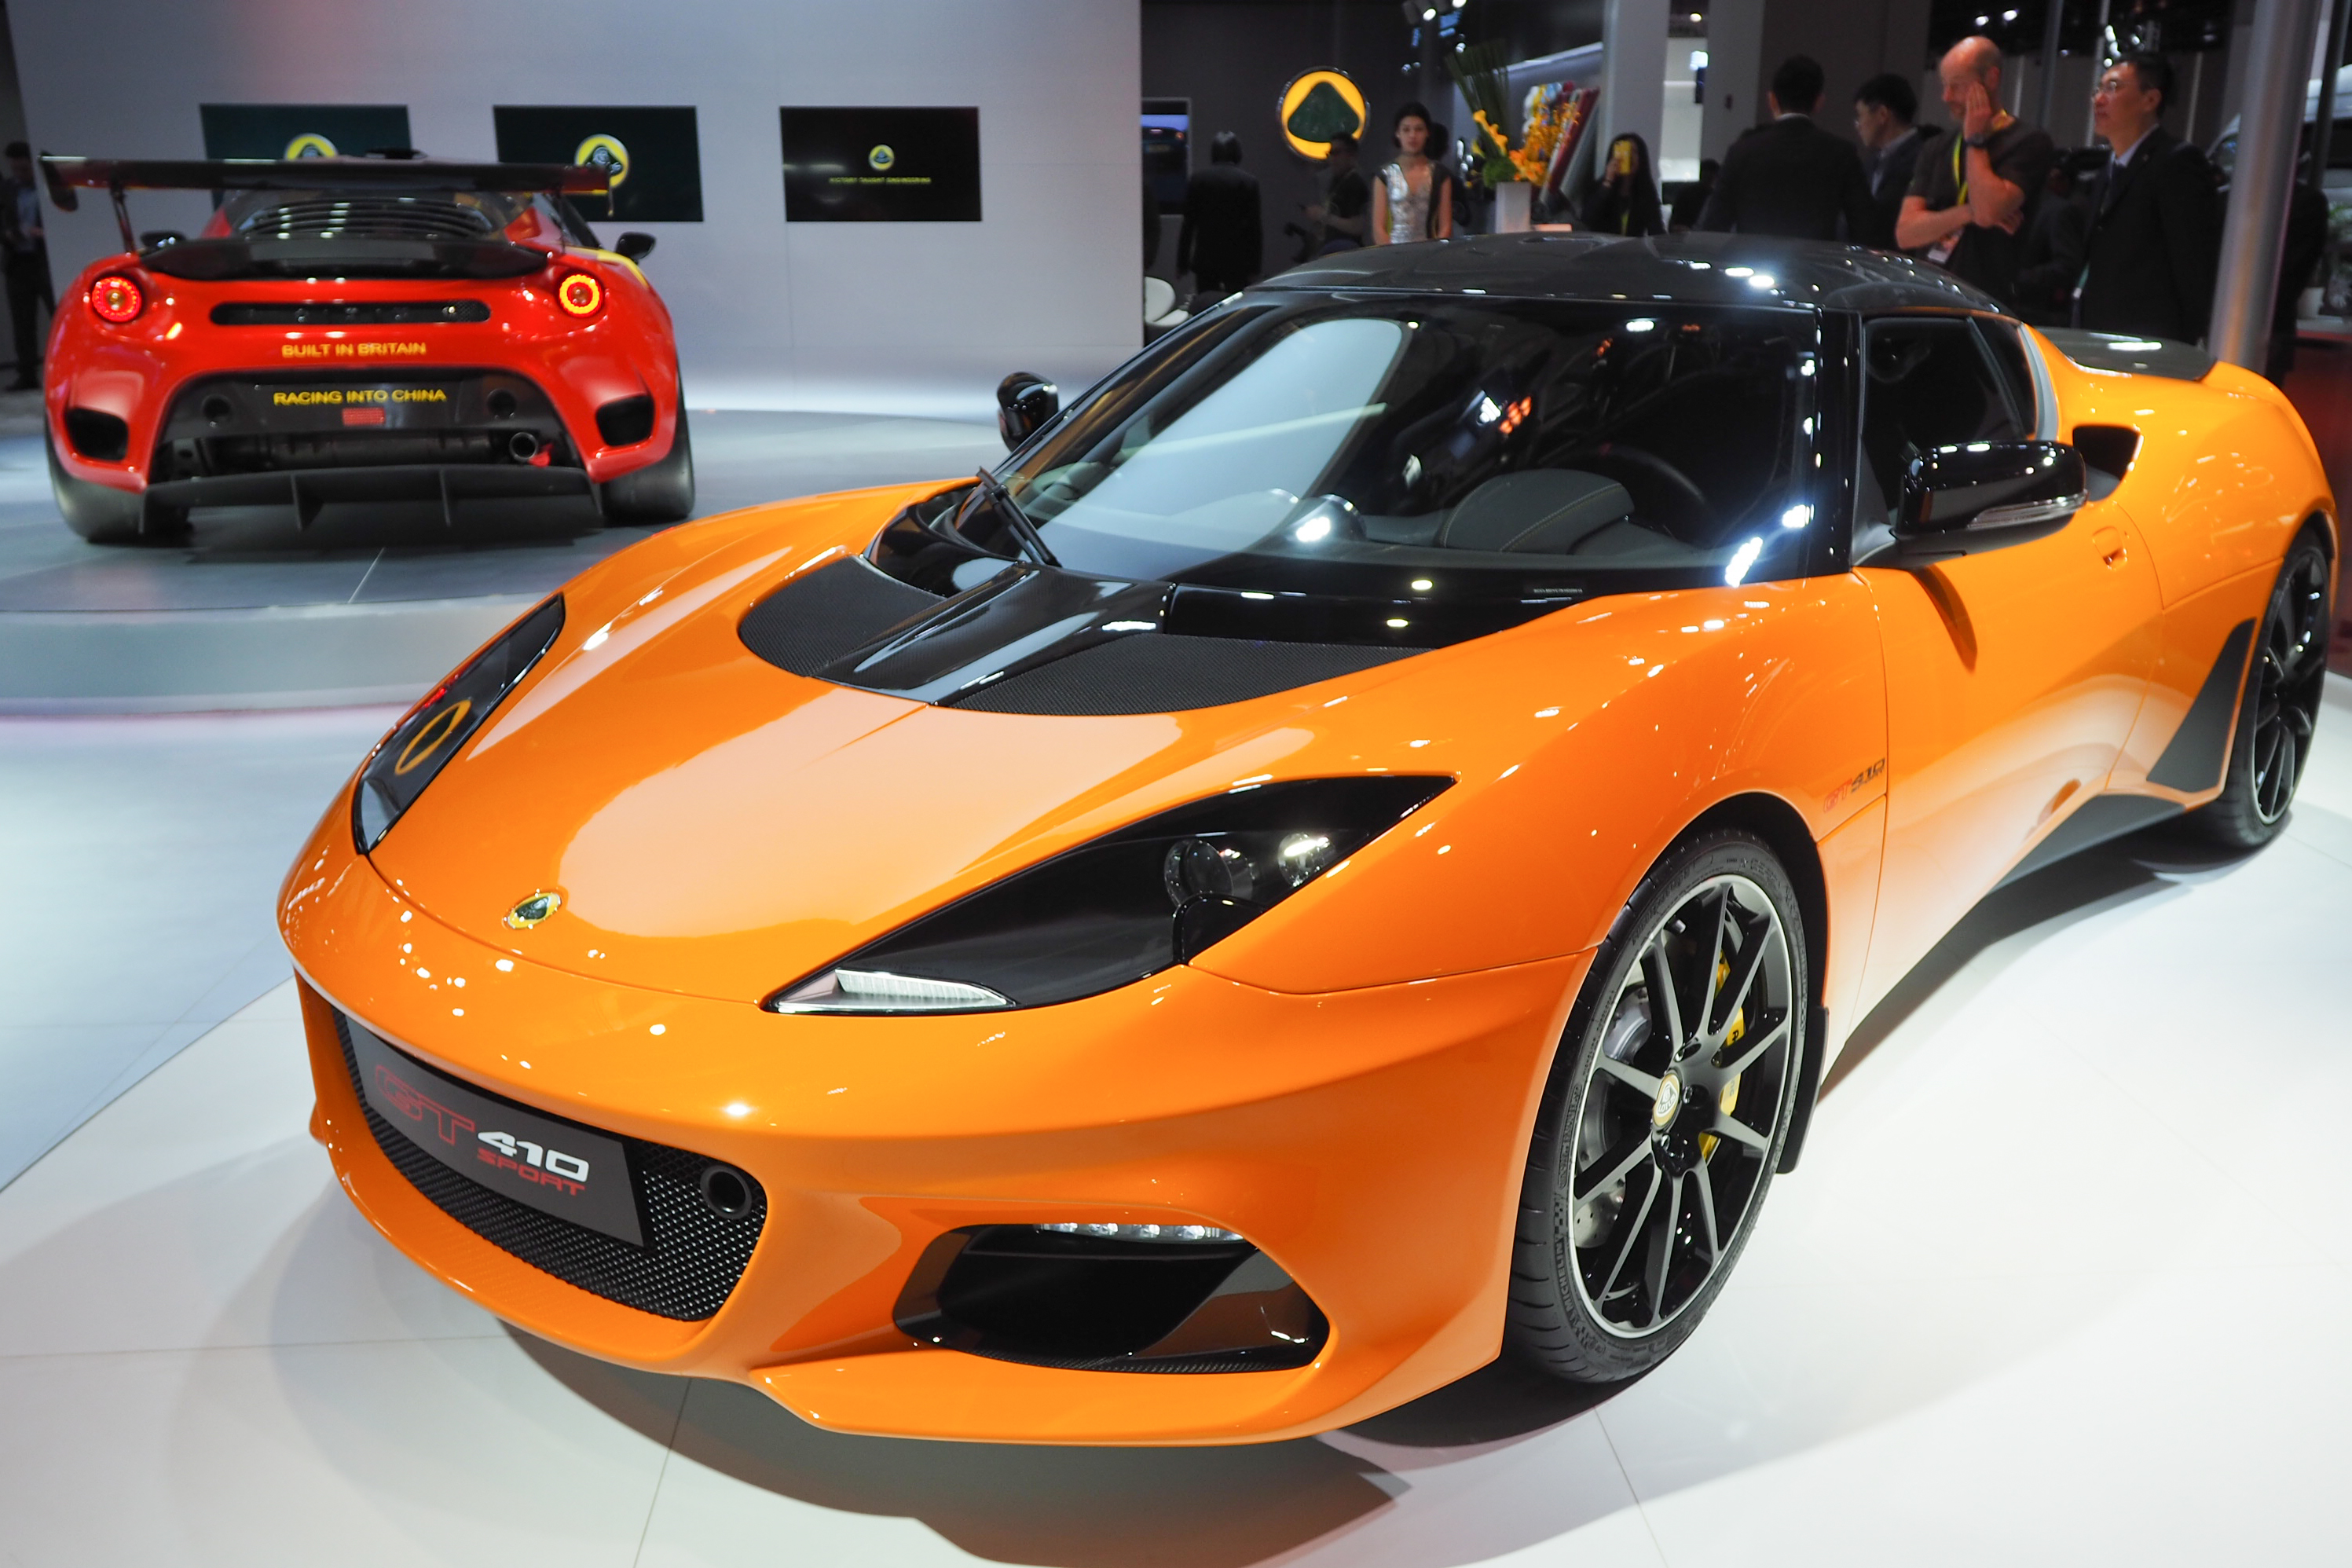 A sneak preview of Shanghai auto show's offerings